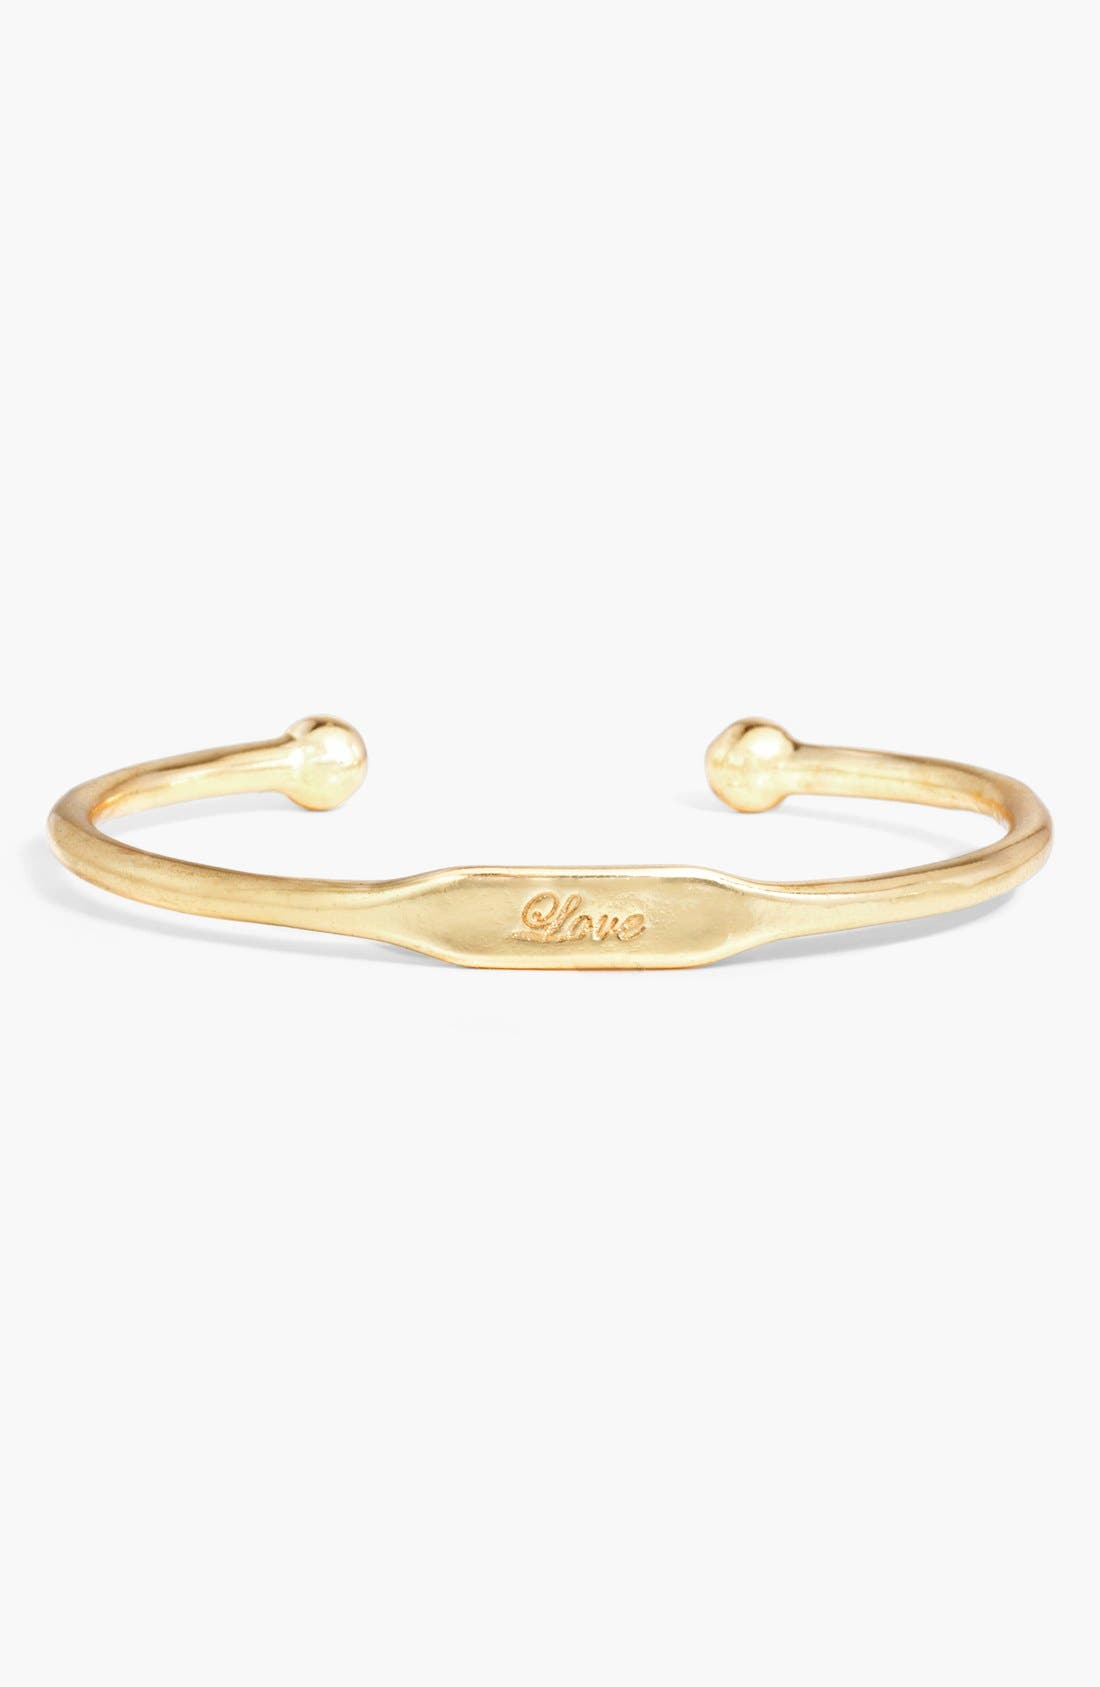 Alternate Image 1 Selected - BaubleBar 'Love' Inscription Cuff (Online Only)